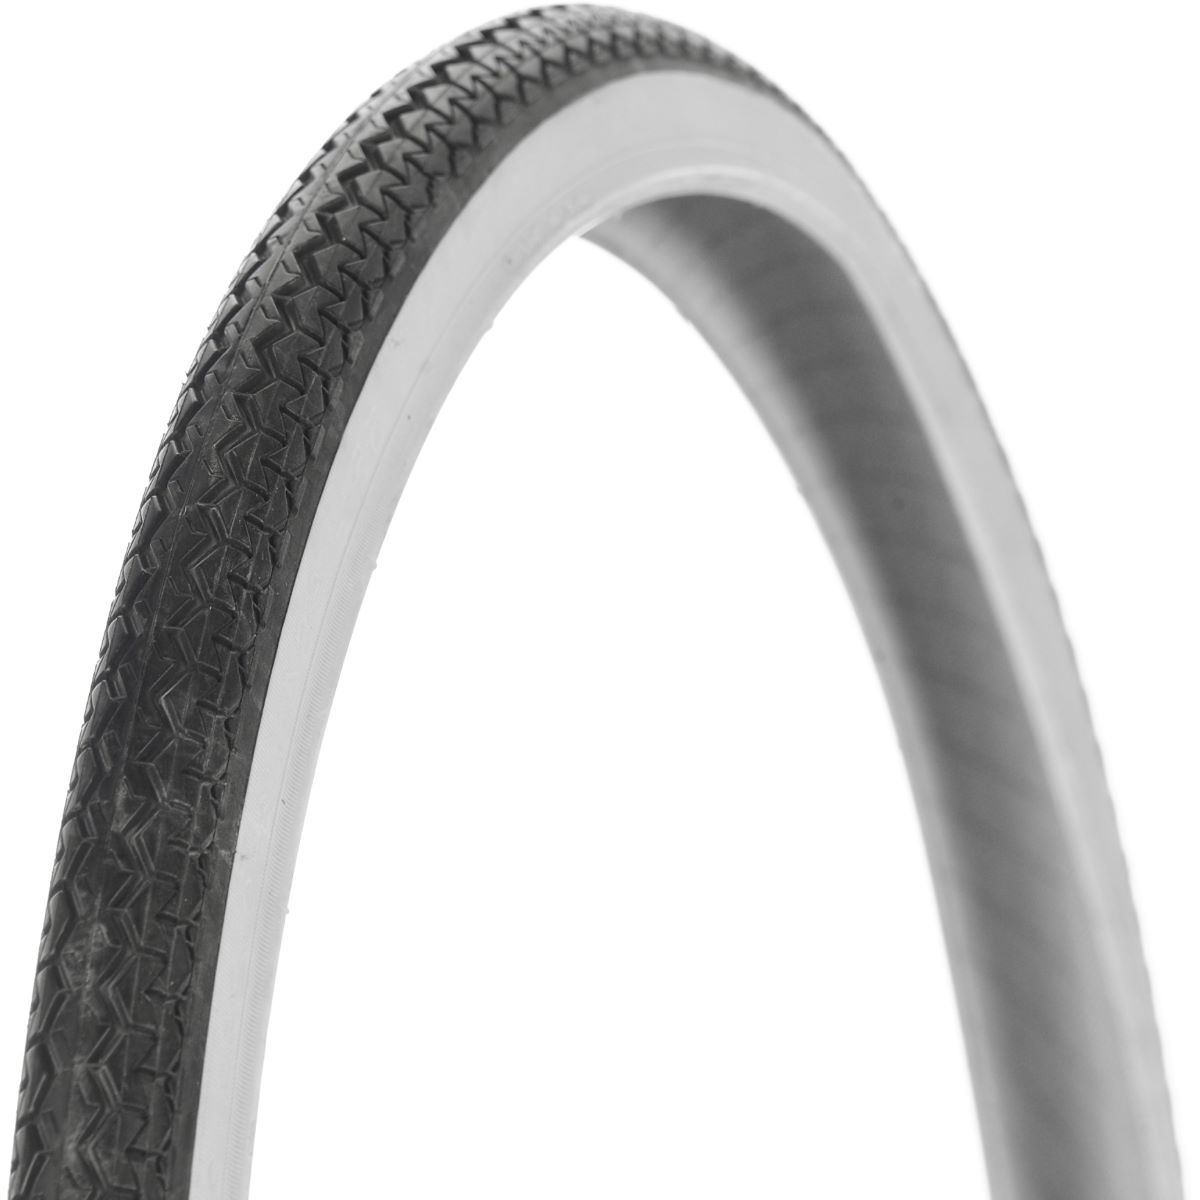 Pneu Michelin World Tour Bike - 26' 1.3/8' Wire Bead Black - White